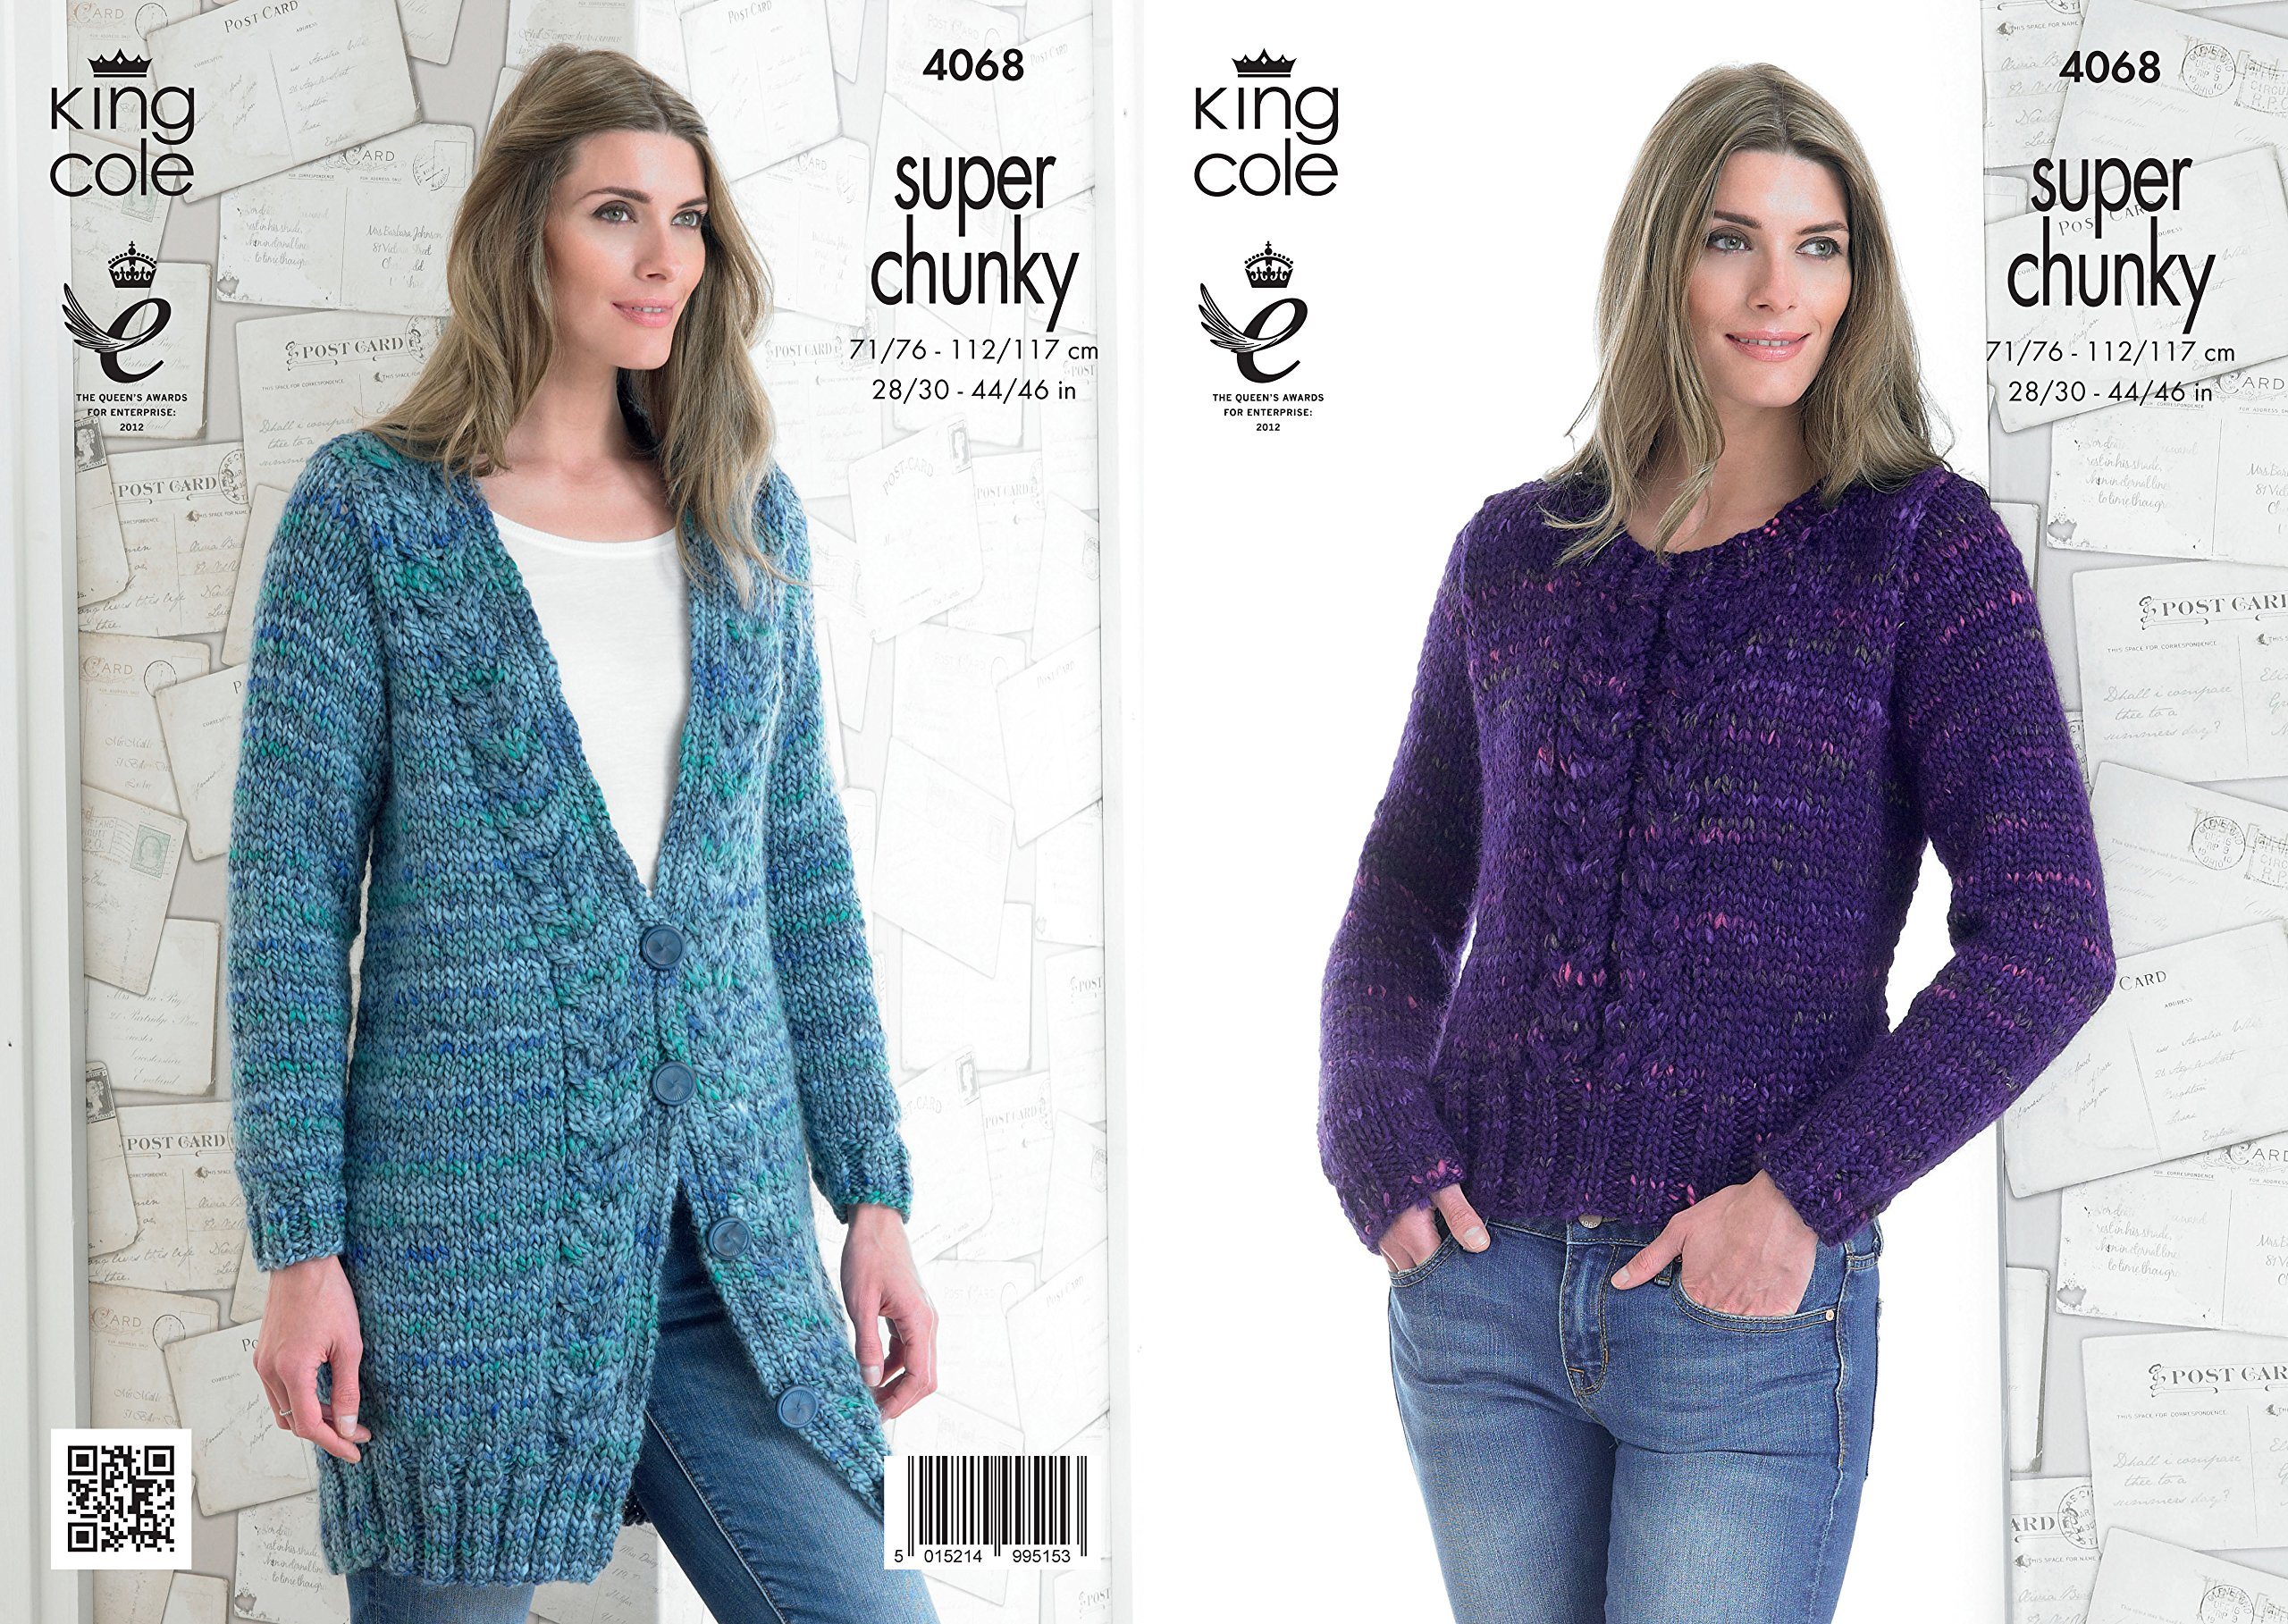 fc2e4b962 Get Quotations · King Cole Ladies Gypsy Super Chunky Knitting Pattern  Womens Cable Knit Sweater   Jacket (4068